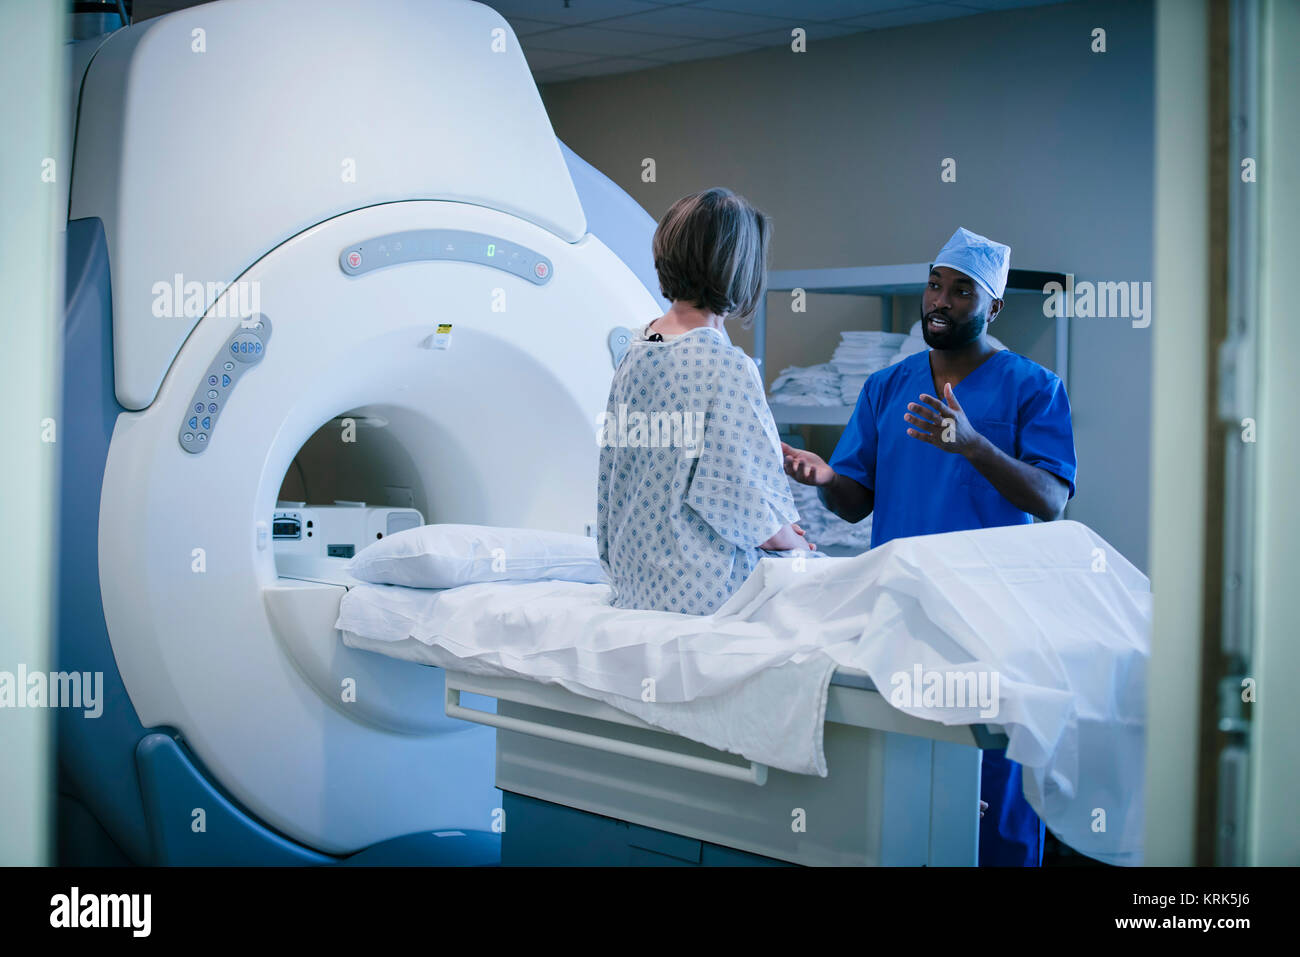 Technician talking to patient at scanner - Stock Image